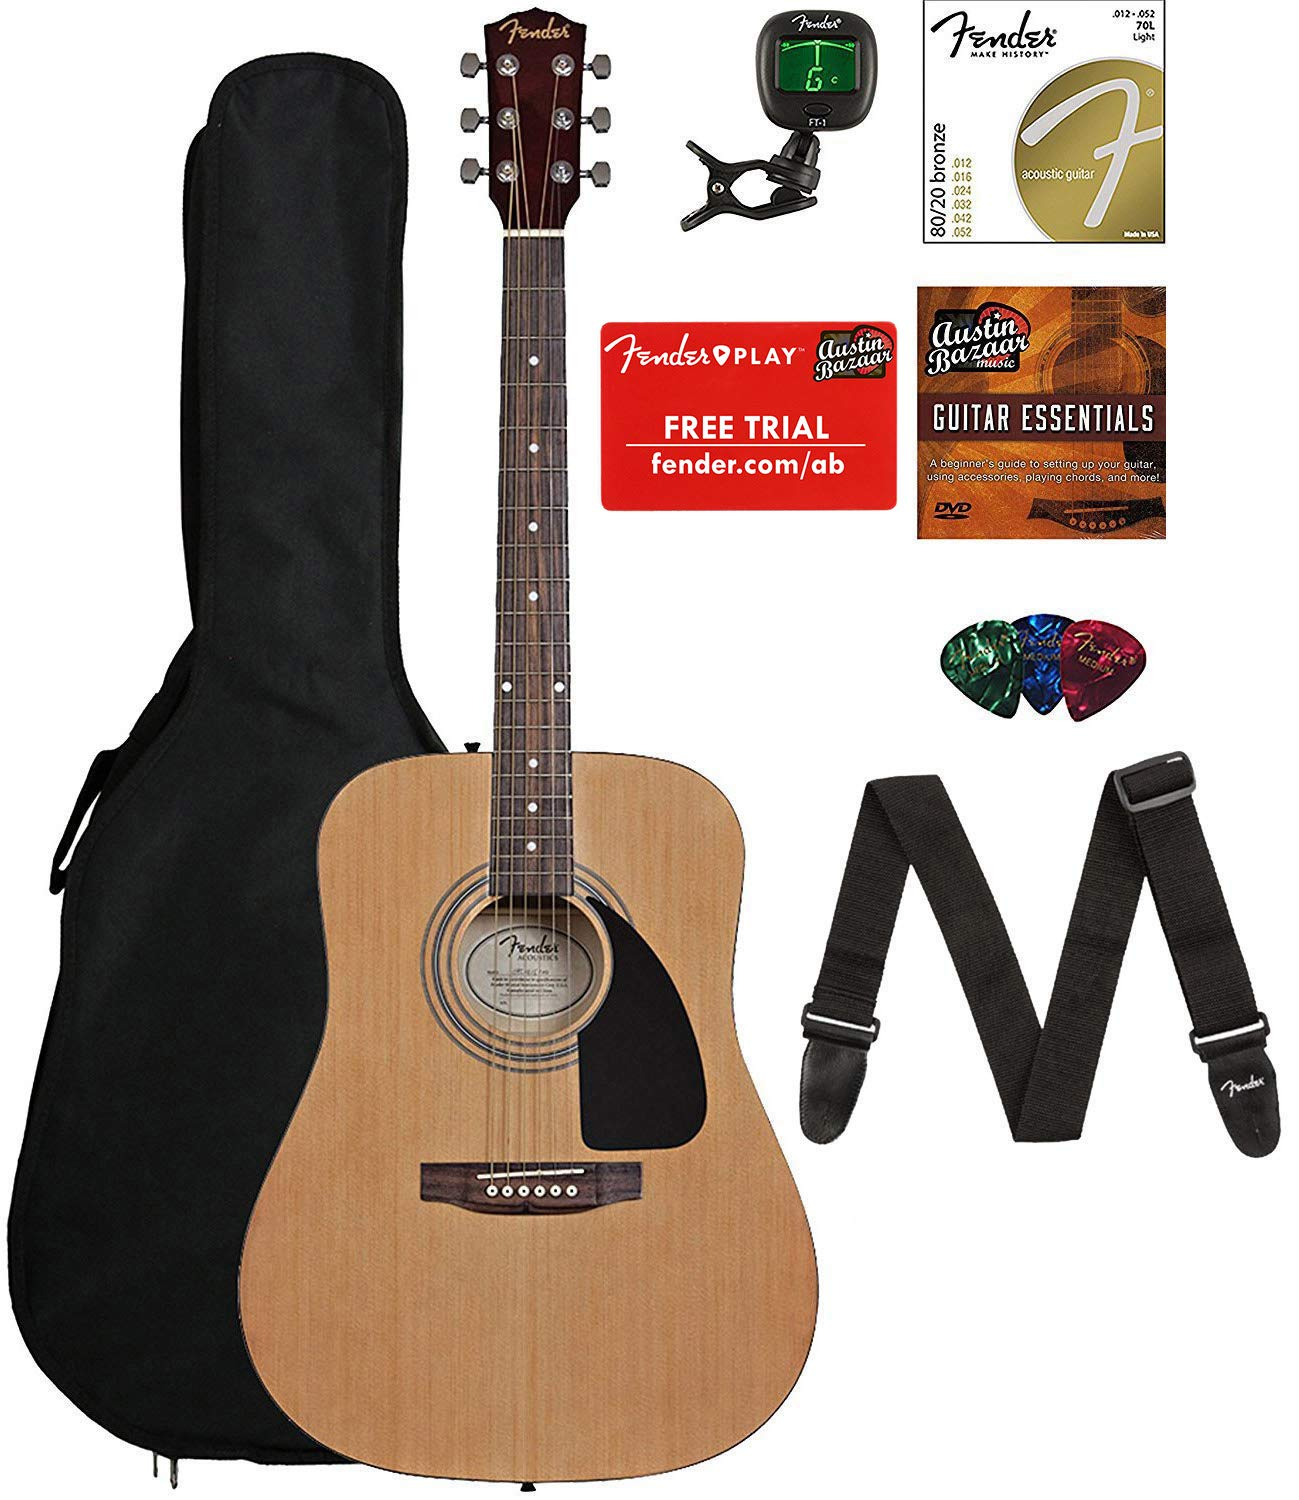 5b520bf71a7 Amazon.com: Fender FA-115 Acoustic Guitar Bundle with Gig Bag, Tuner,  Strings, Strap, Picks, and Austin Bazaar Instructional DVD: Musical  Instruments